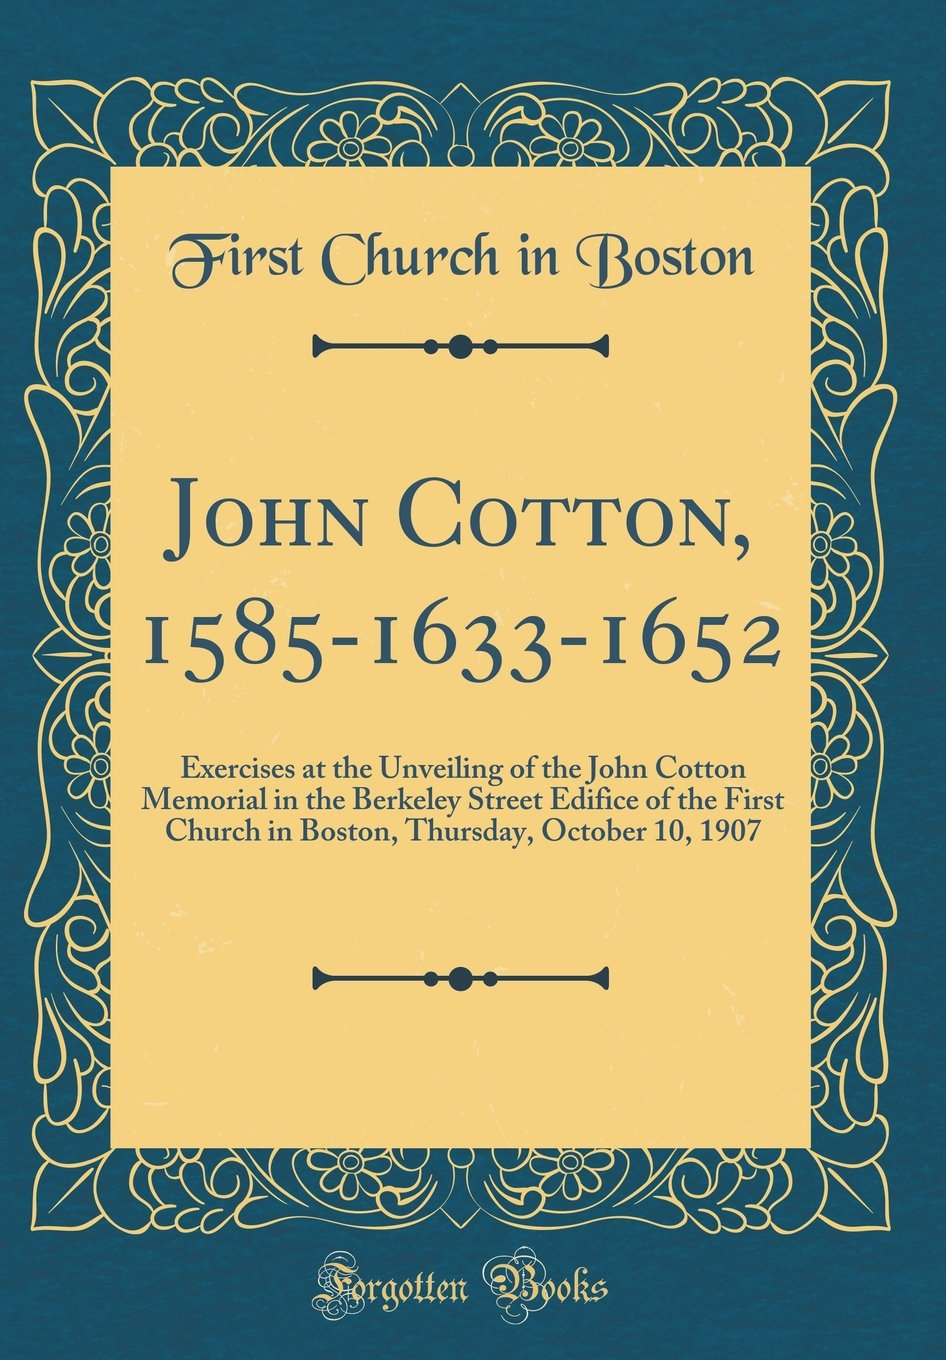 John Cotton, 1585-1633-1652: Exercises at the Unveiling of the John Cotton Memorial in the Berkeley Street Edifice of the First Church in Boston, Thursday, October 10, 1907 (Classic Reprint) PDF